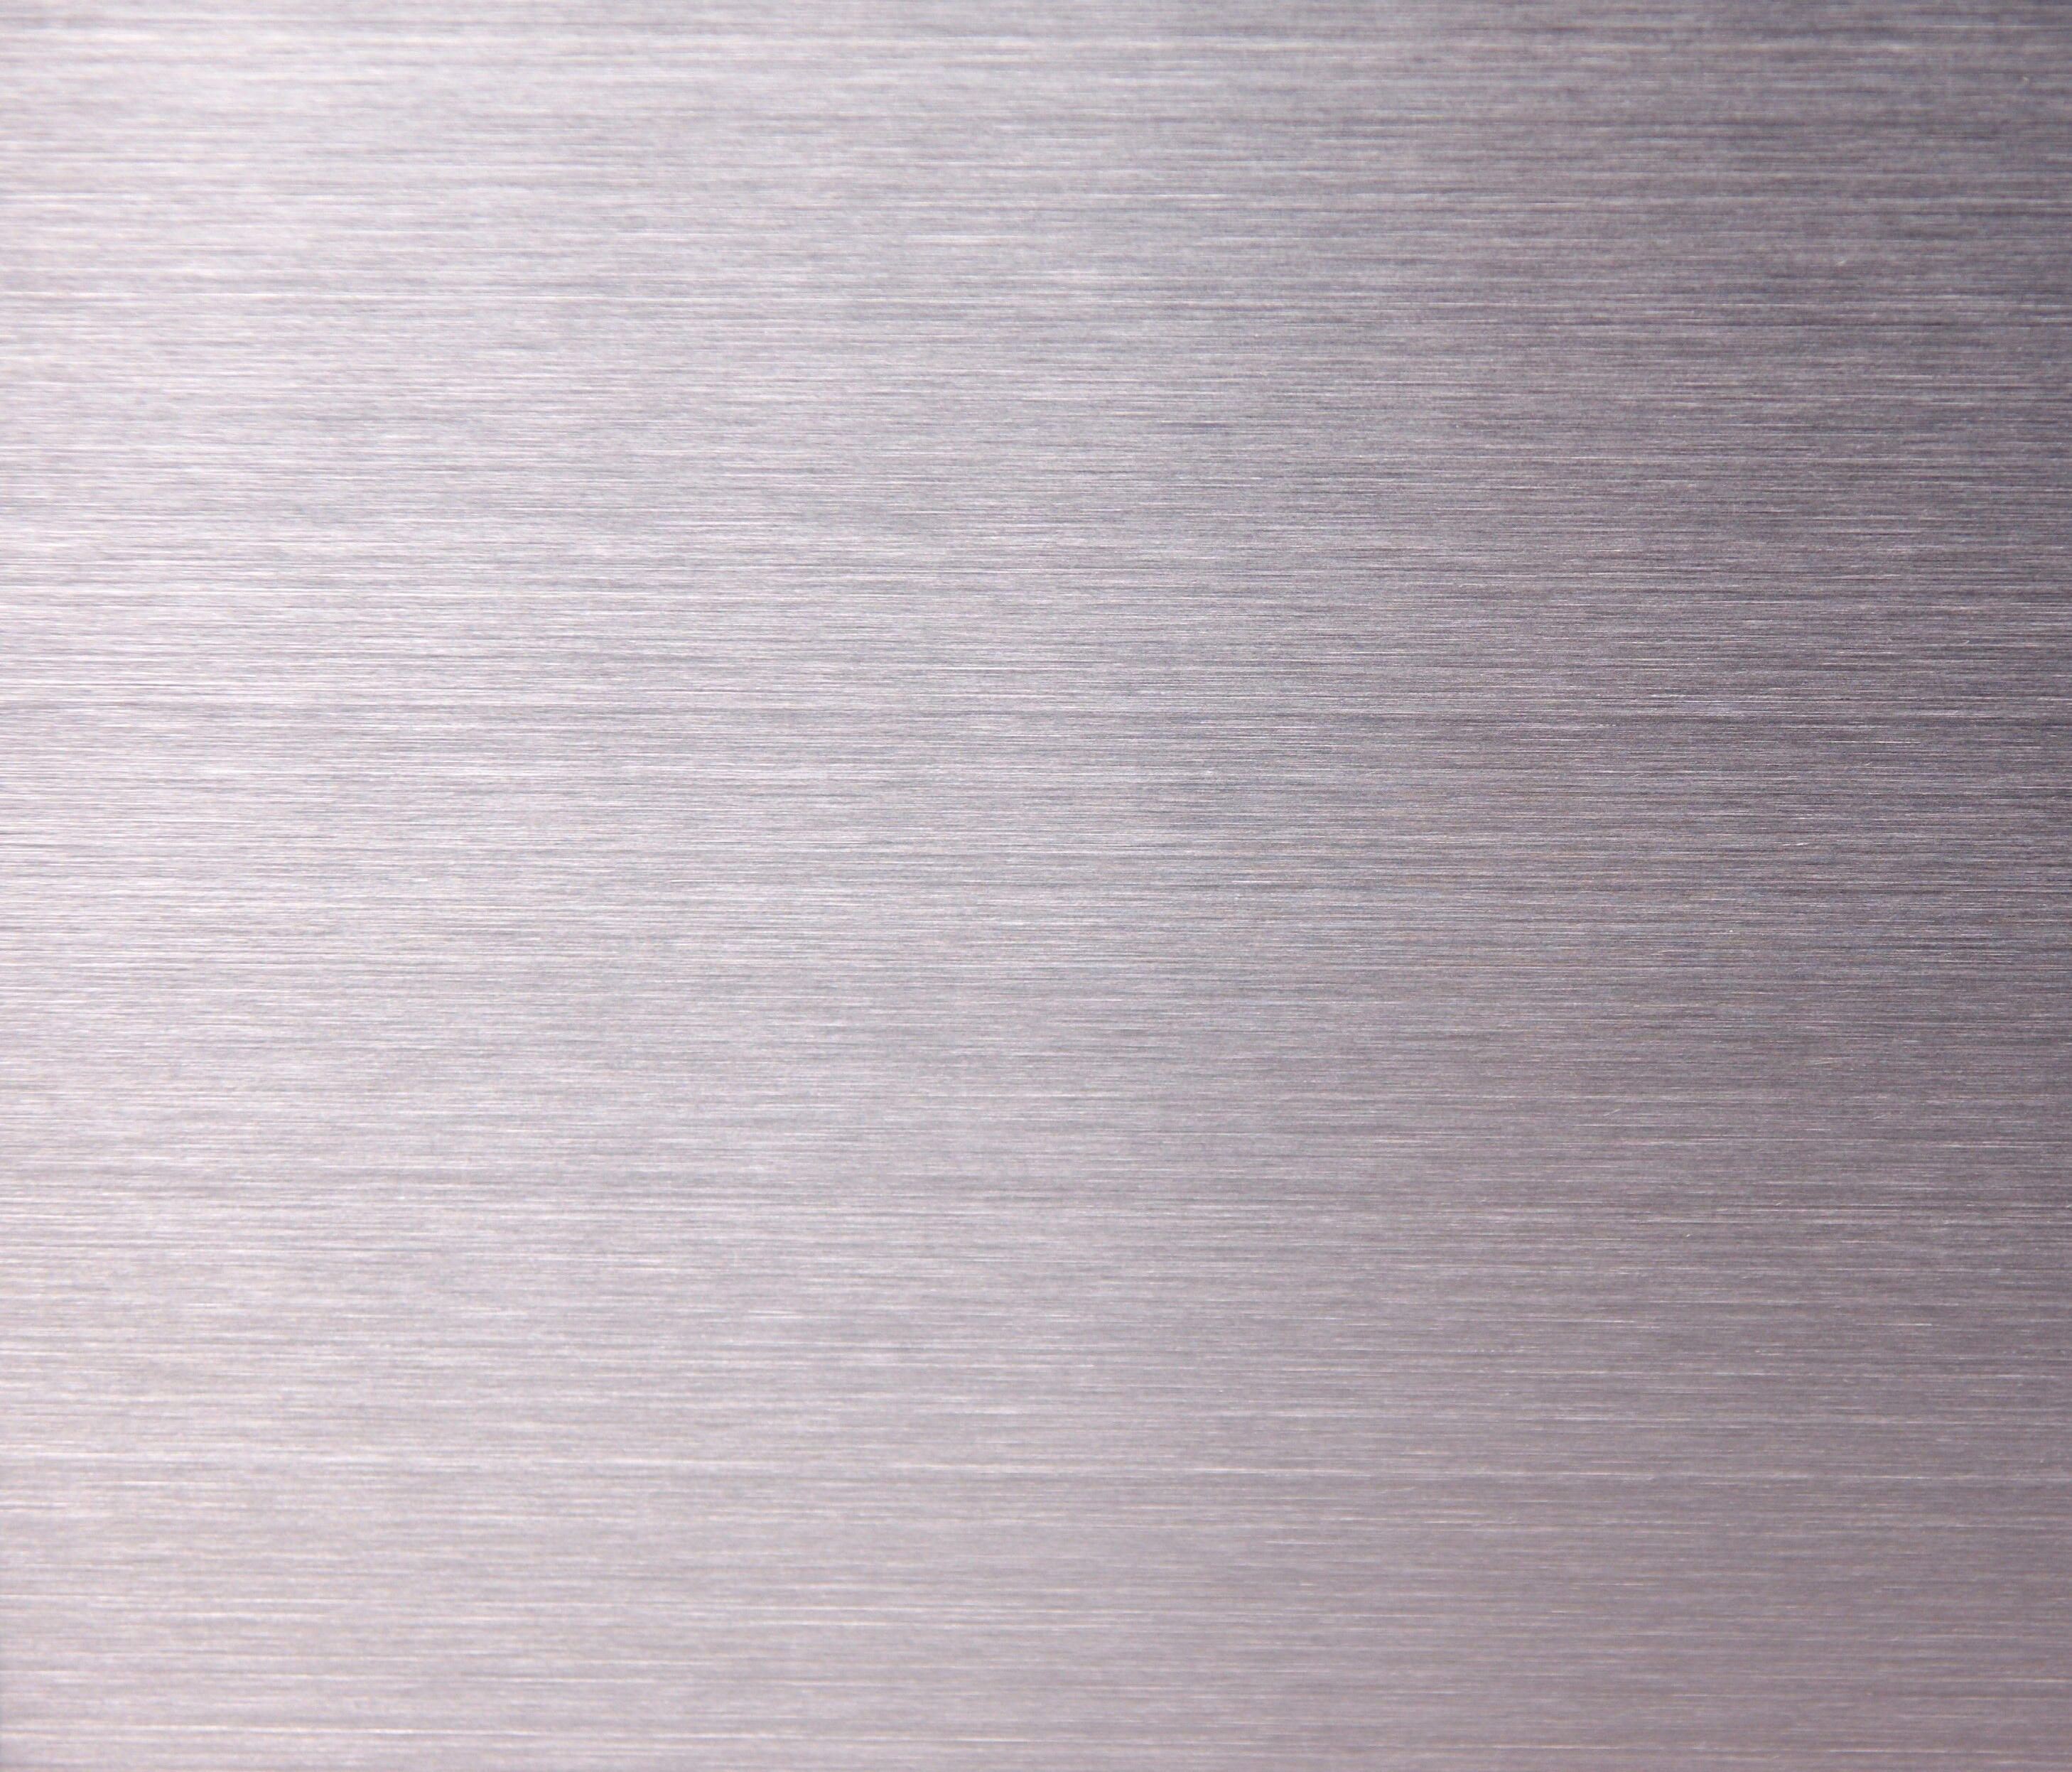 Stainless Steel Hairline 520 Sheets From Inox